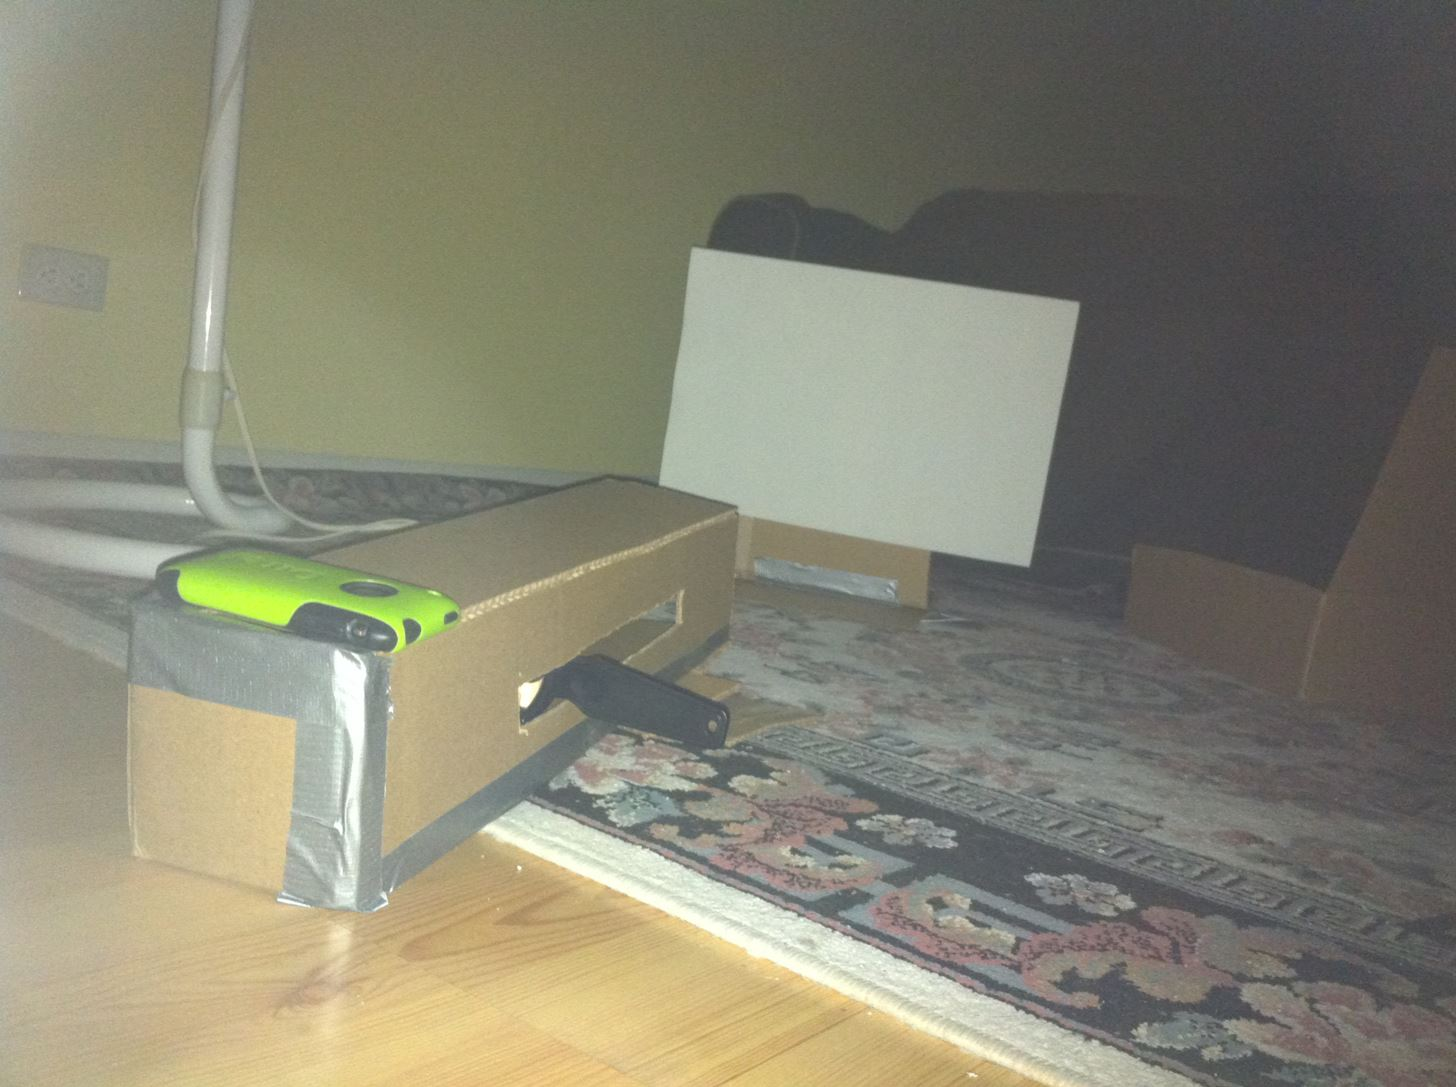 How to Make a Cheap iPod Projector and Screen